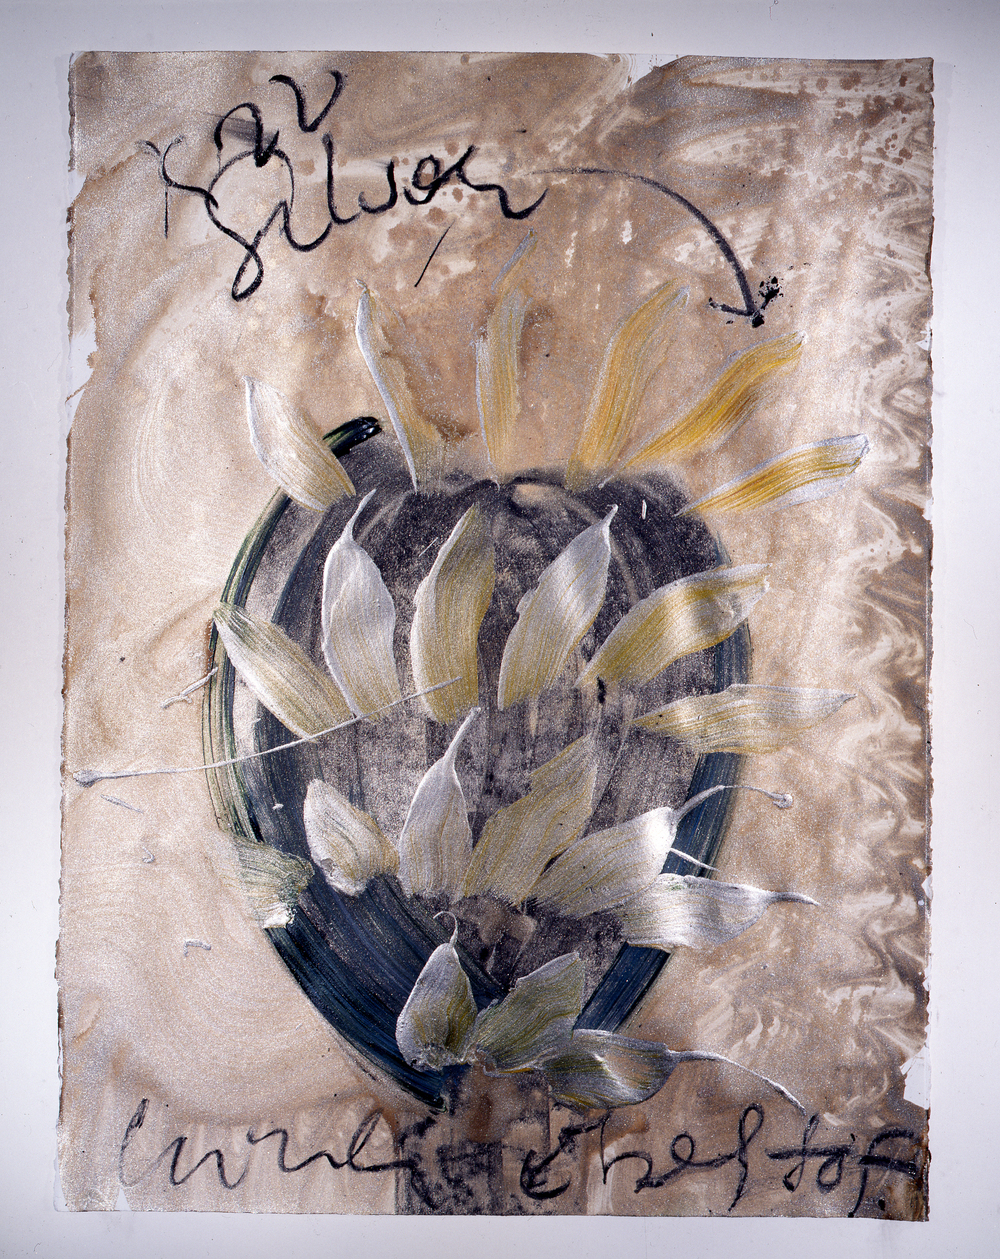 Dale Chihuly,  Ebeltoft Drawing,  (1991, mixed media on paper, 30 x 22 inches), DC.343